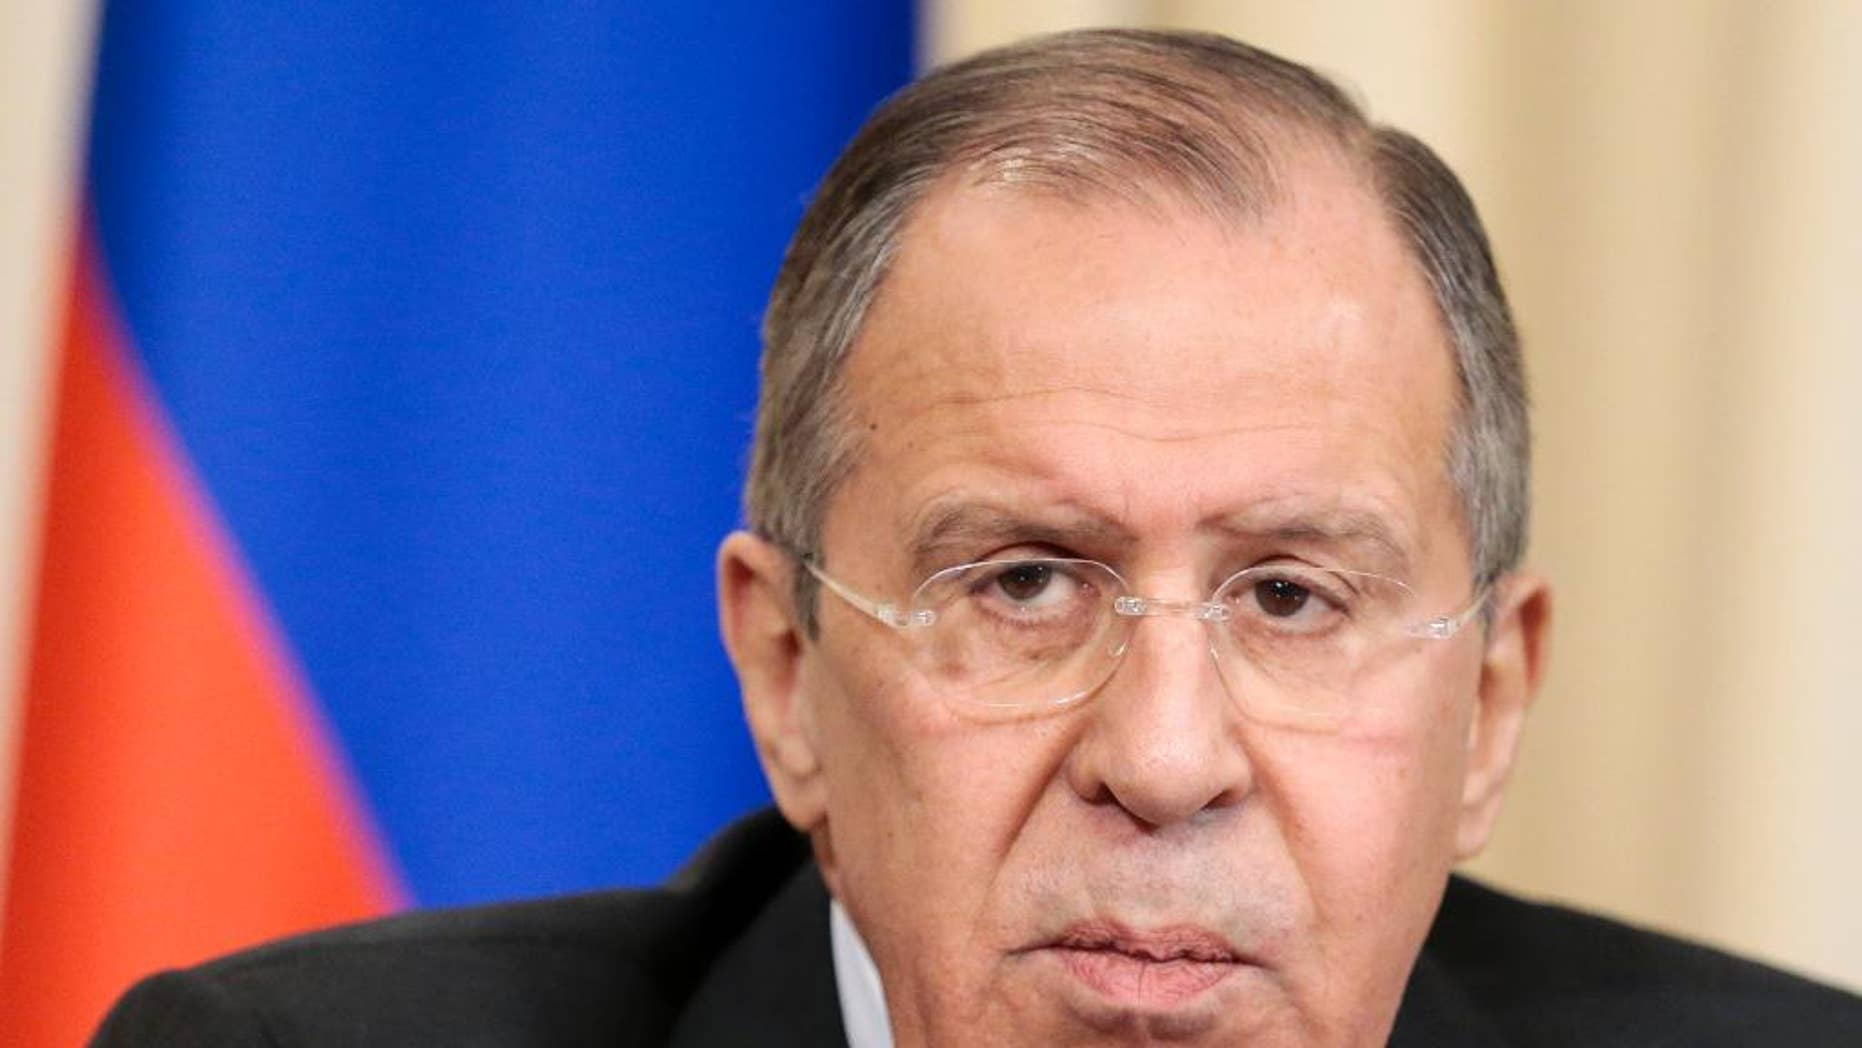 Russian Foreign Minister Sergey Lavrov listens for a question during a shared news conference with High Representative of the European Union for Foreign Affairs Federica Mogherini following their talks n Moscow, Russia, Monday, April 24, 2017. Lavrov has vowed to use Moscow's influence to get Ukraine's separatist rebels to comply with a cease-fire deal. (AP Photo/Ivan Sekretarev)